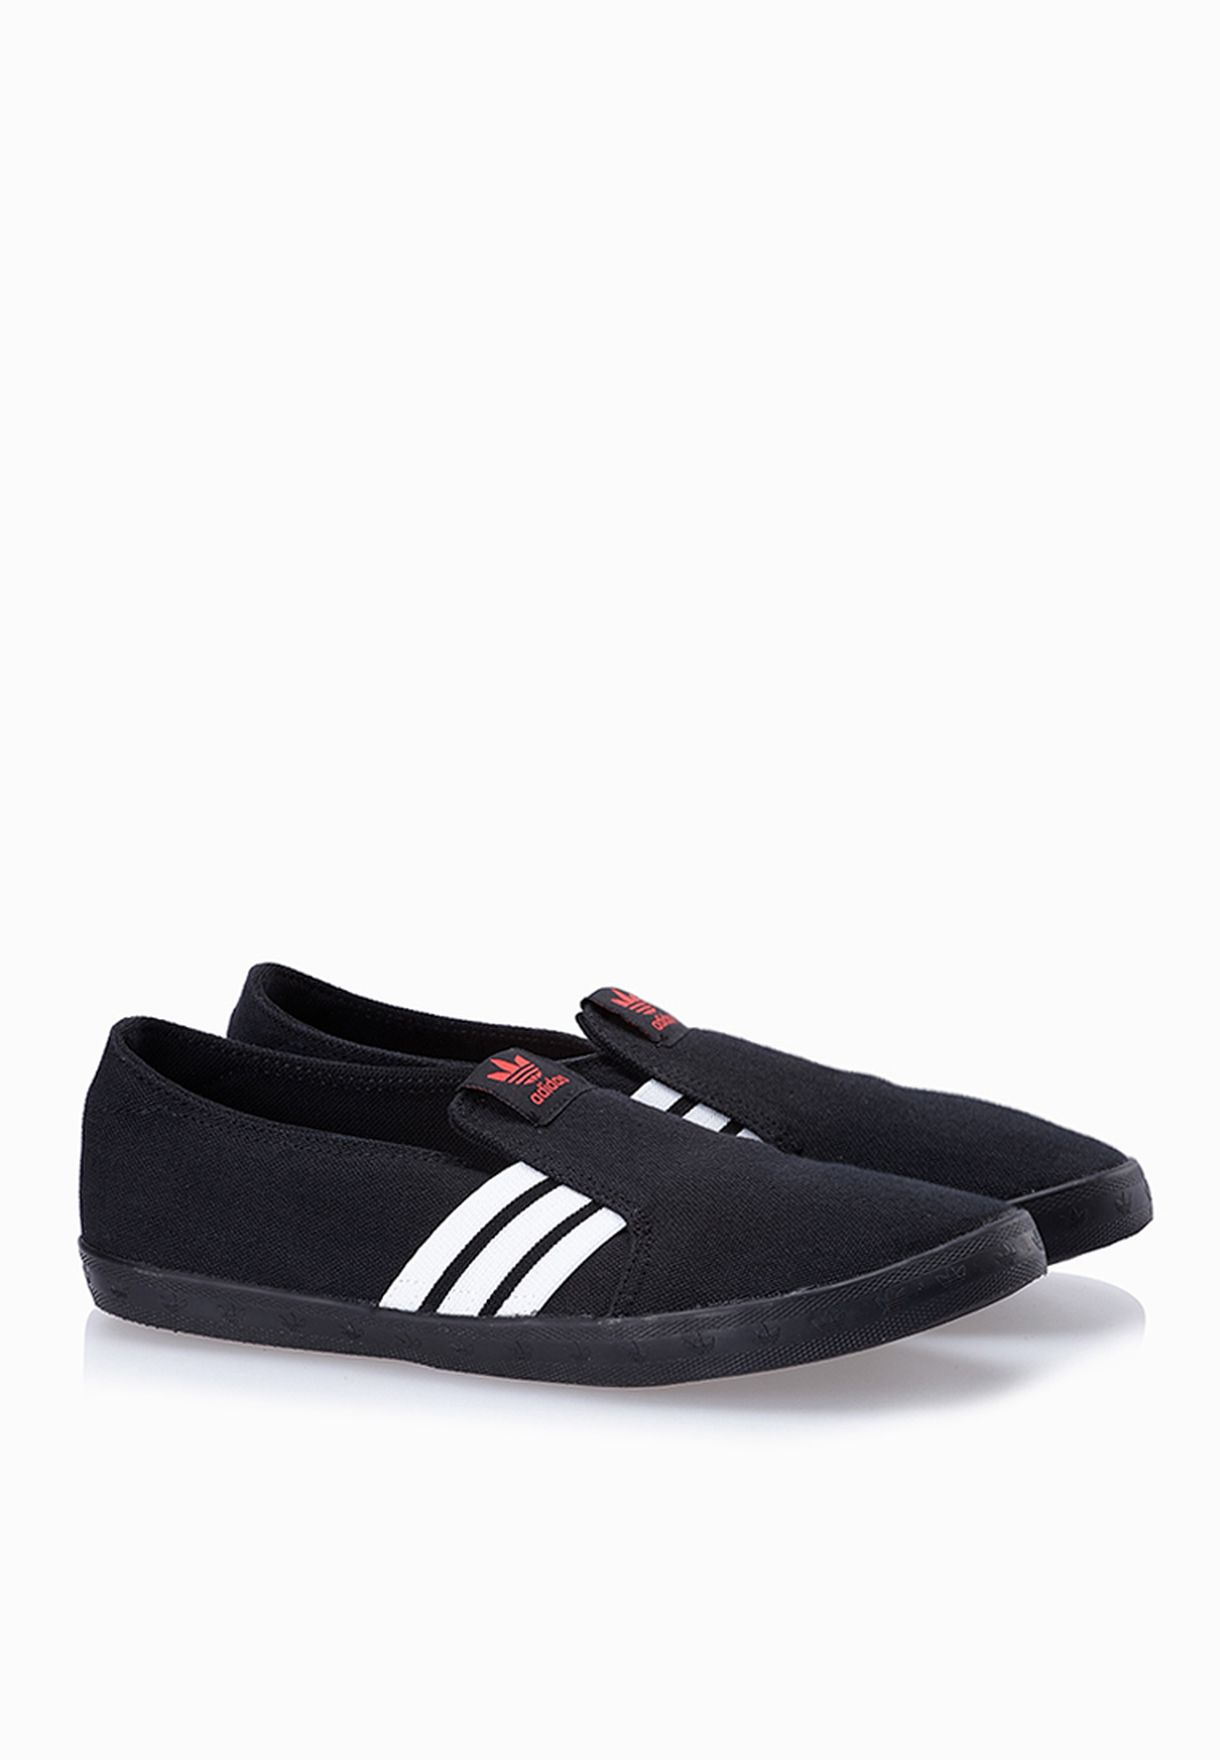 Adria PS Slip On